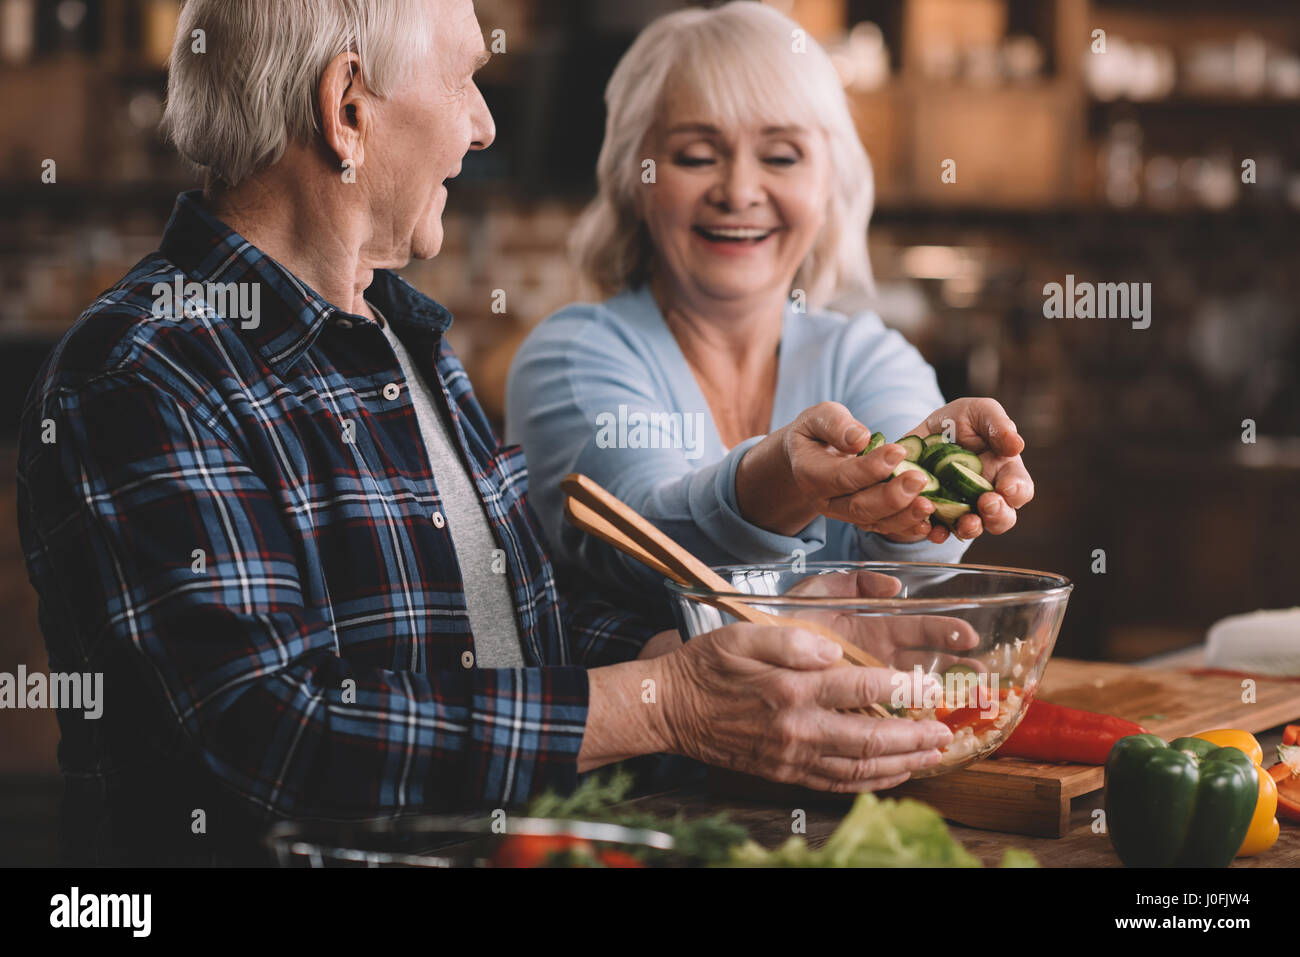 portrait of senior woman putting cucumbers into bowl in husband's hands - Stock Image